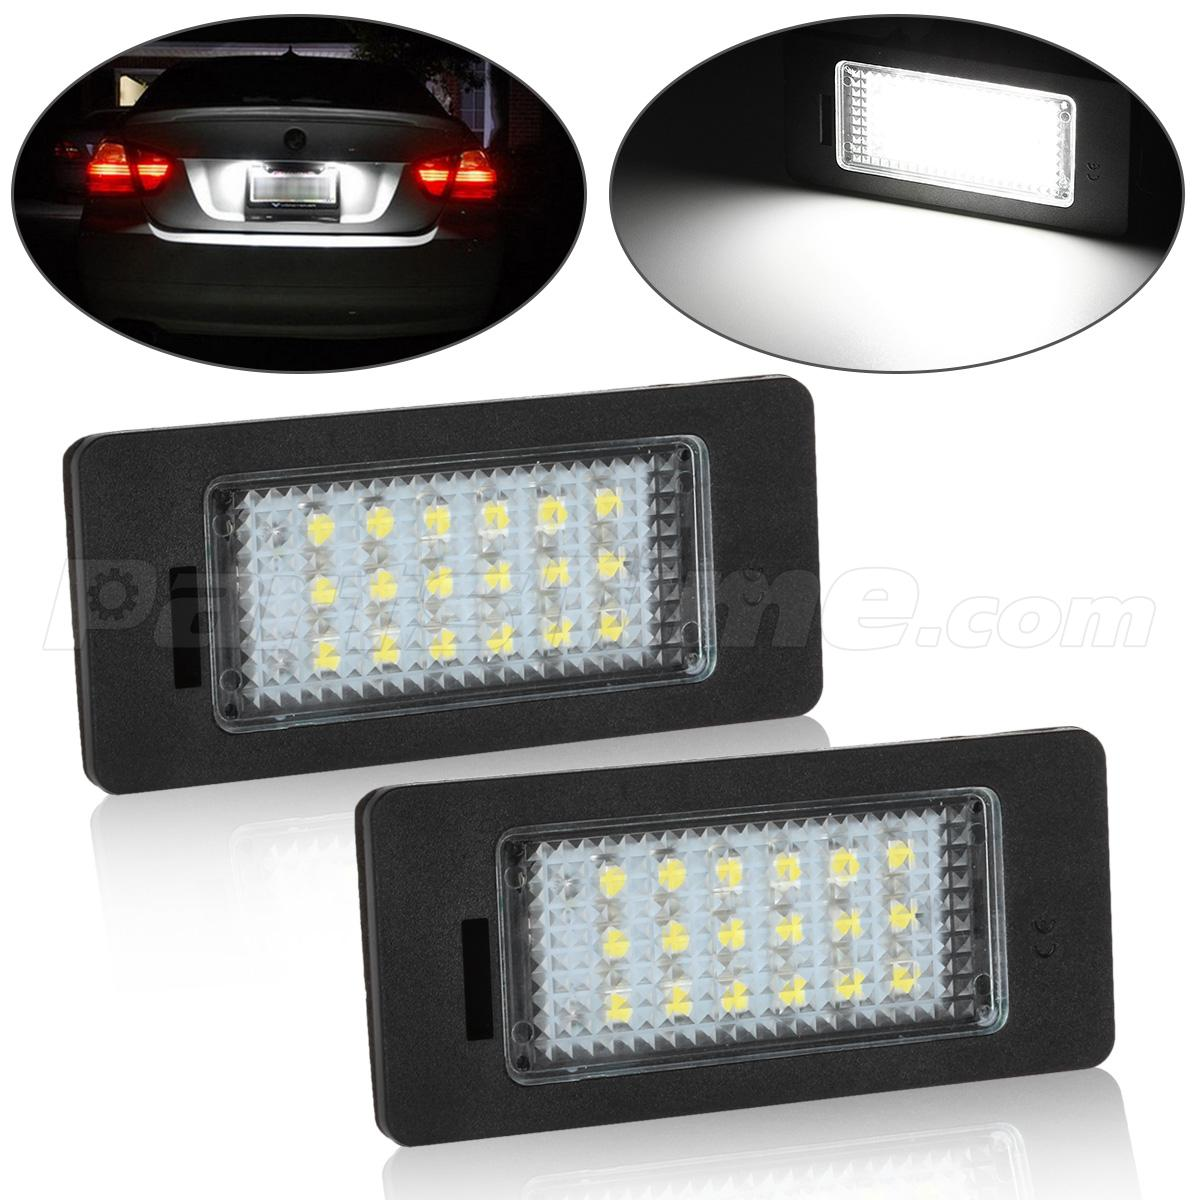 2xNo Error LED LICENSE PLATE LIGHT LED REPLACEMENT FOR